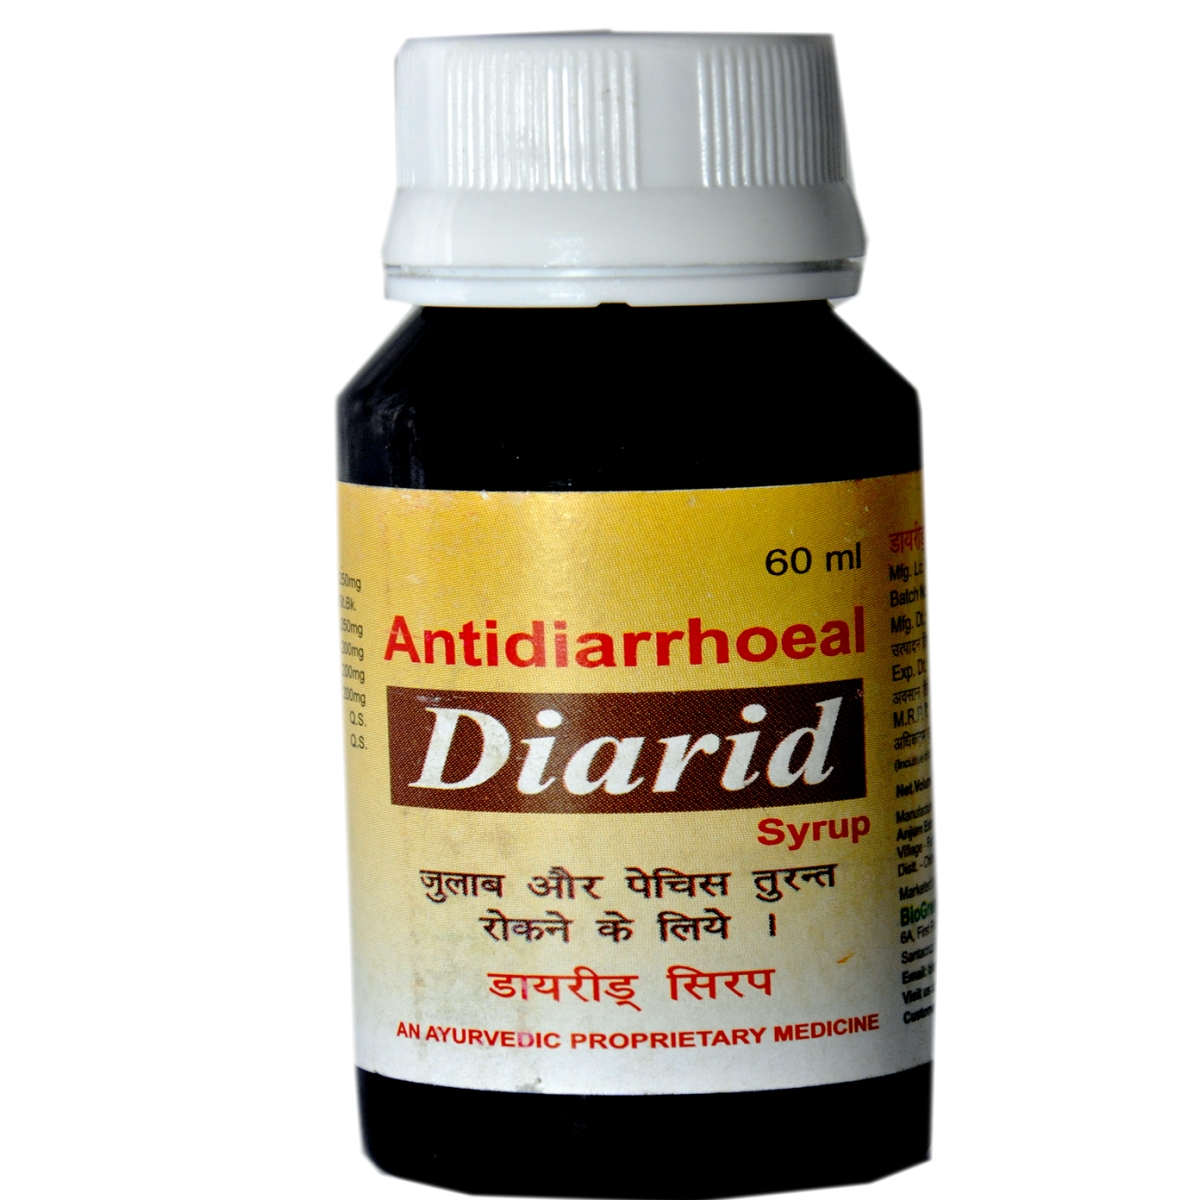 Diarid Syrup In Cuttack